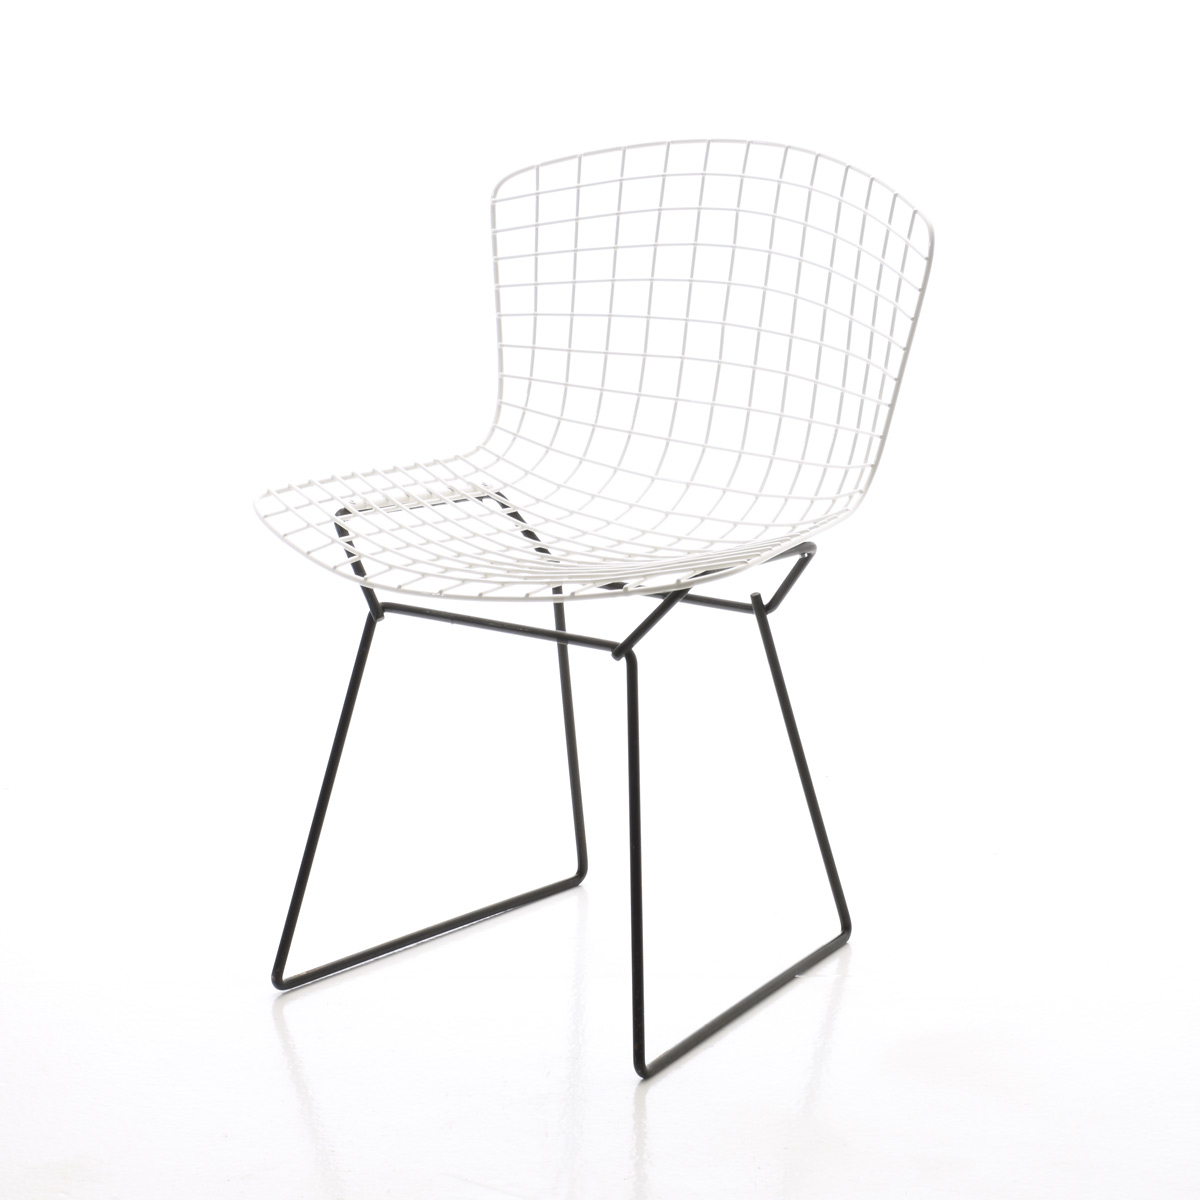 Bertoia Stühle, Knoll International, 6er Set. - 4